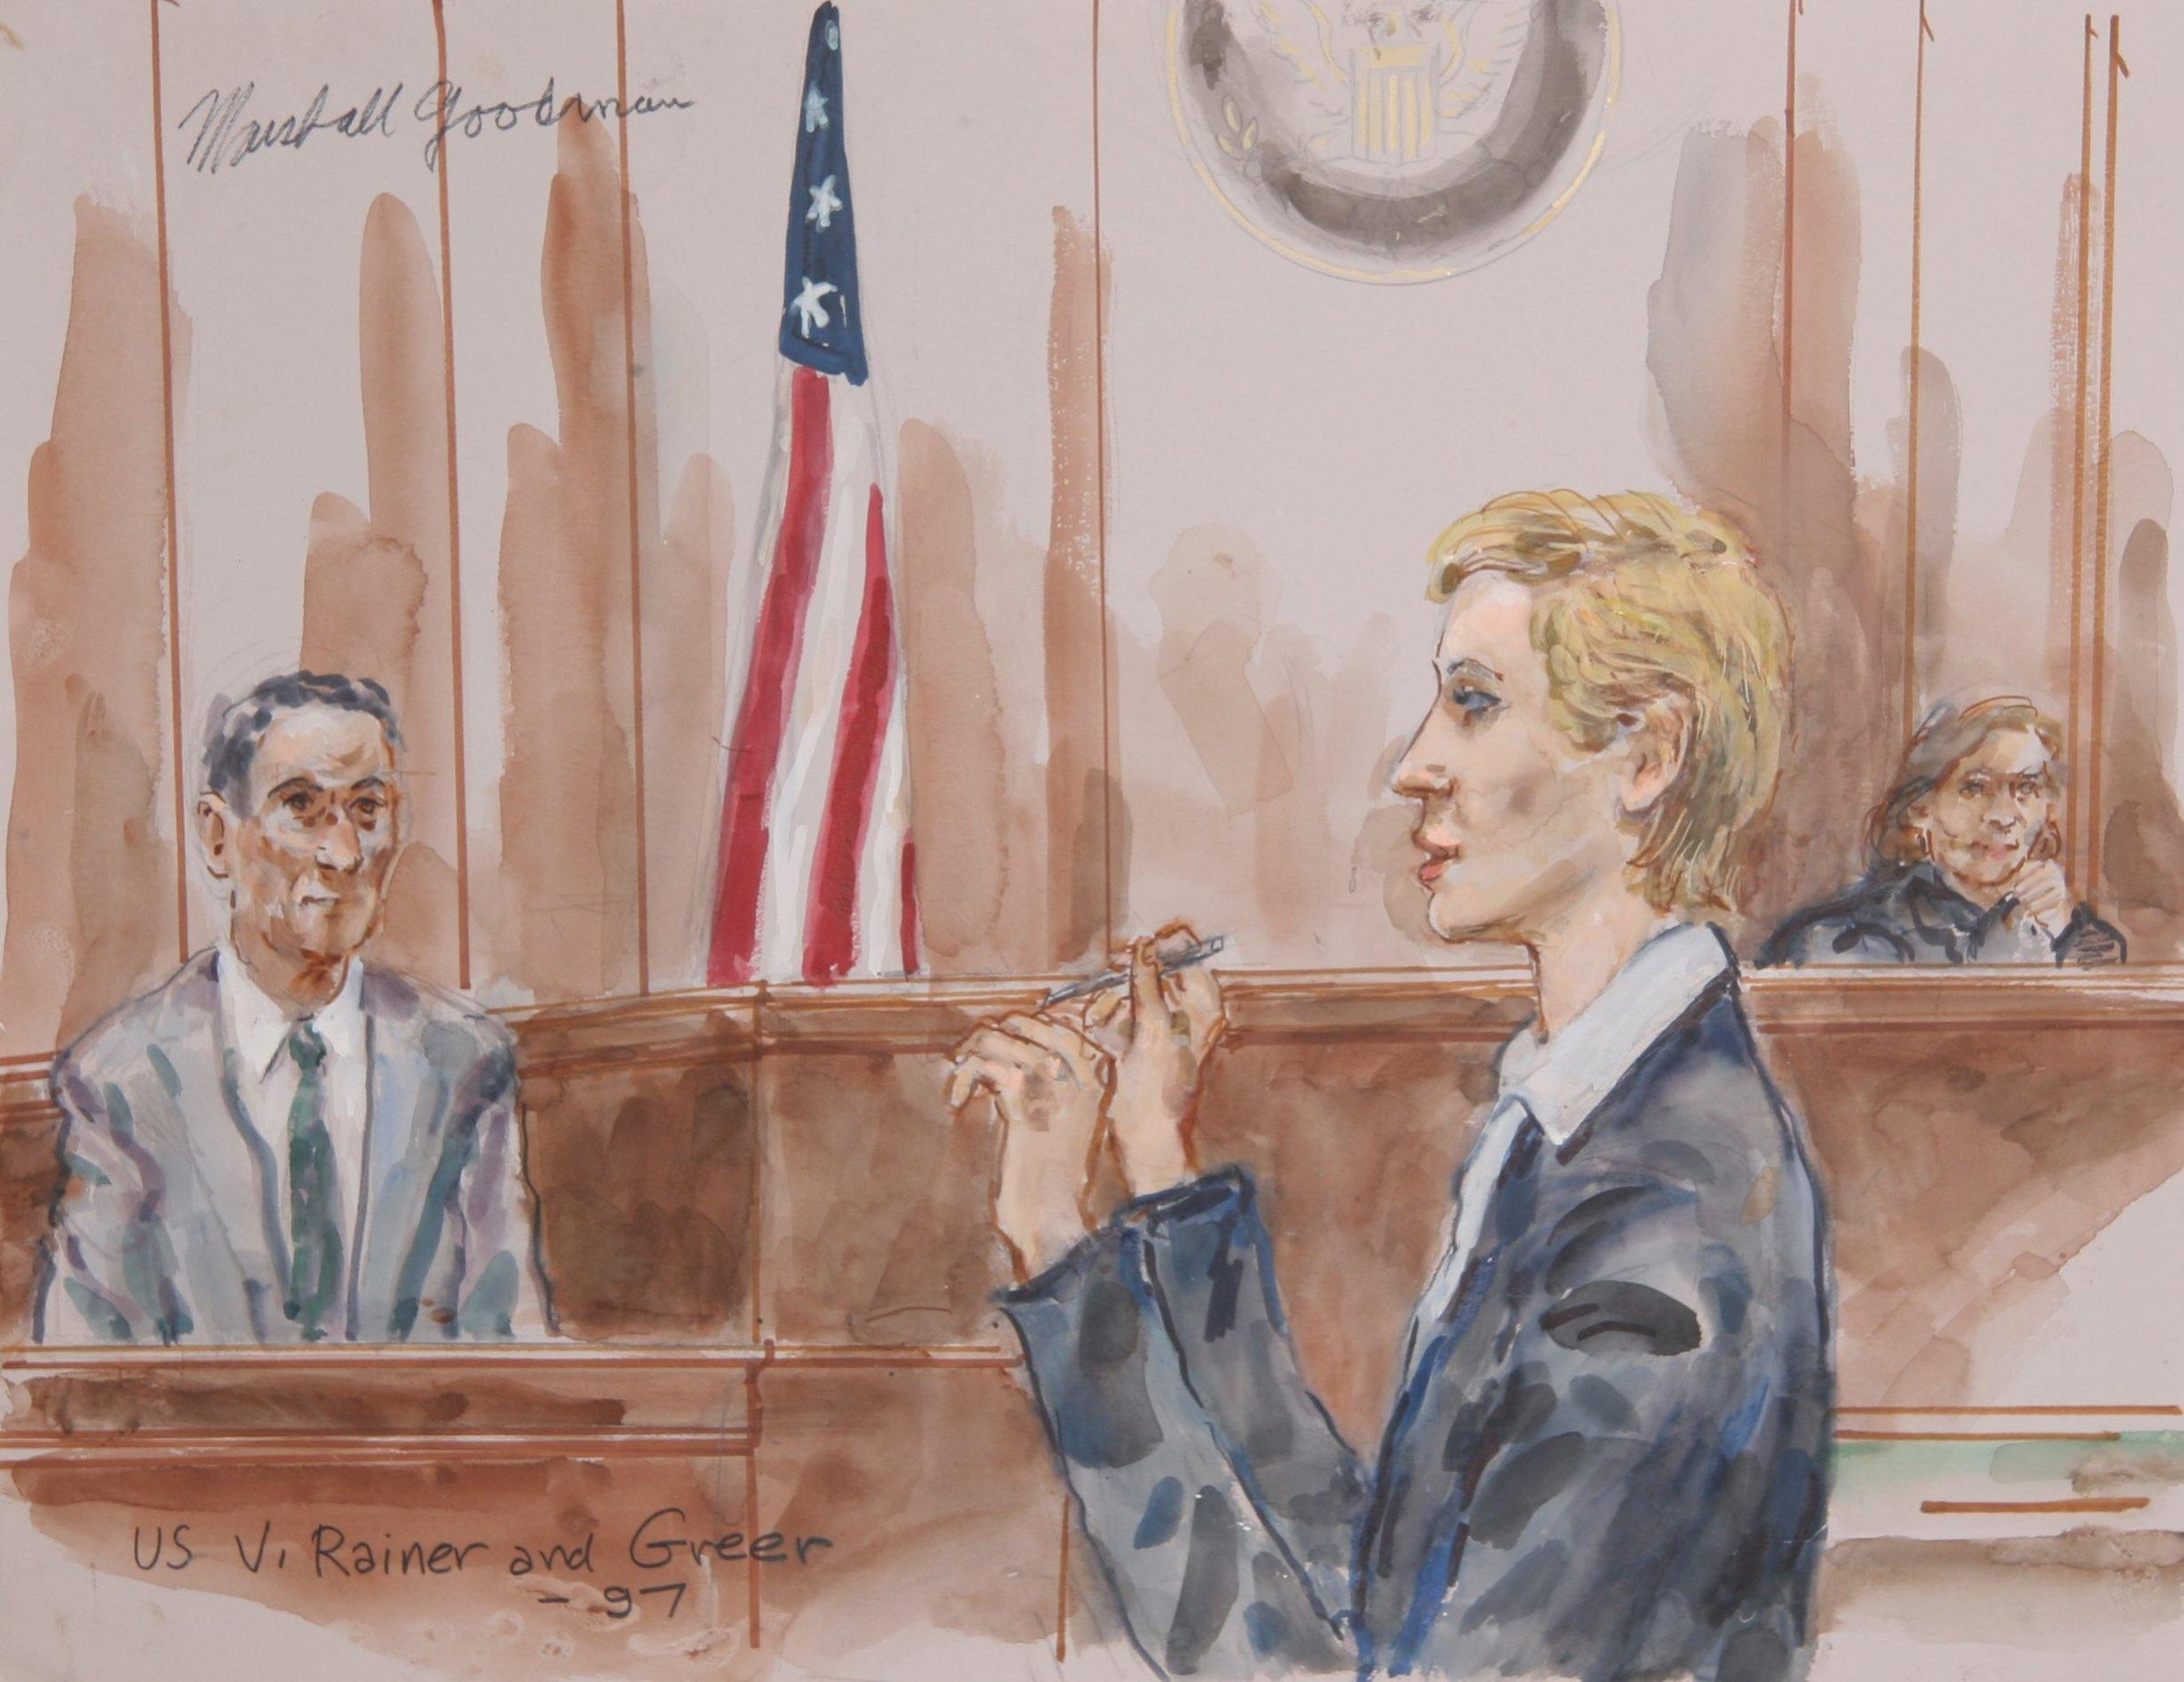 Marshall Goodman, US v. Rainer & Greer Watercolor - RoGallery